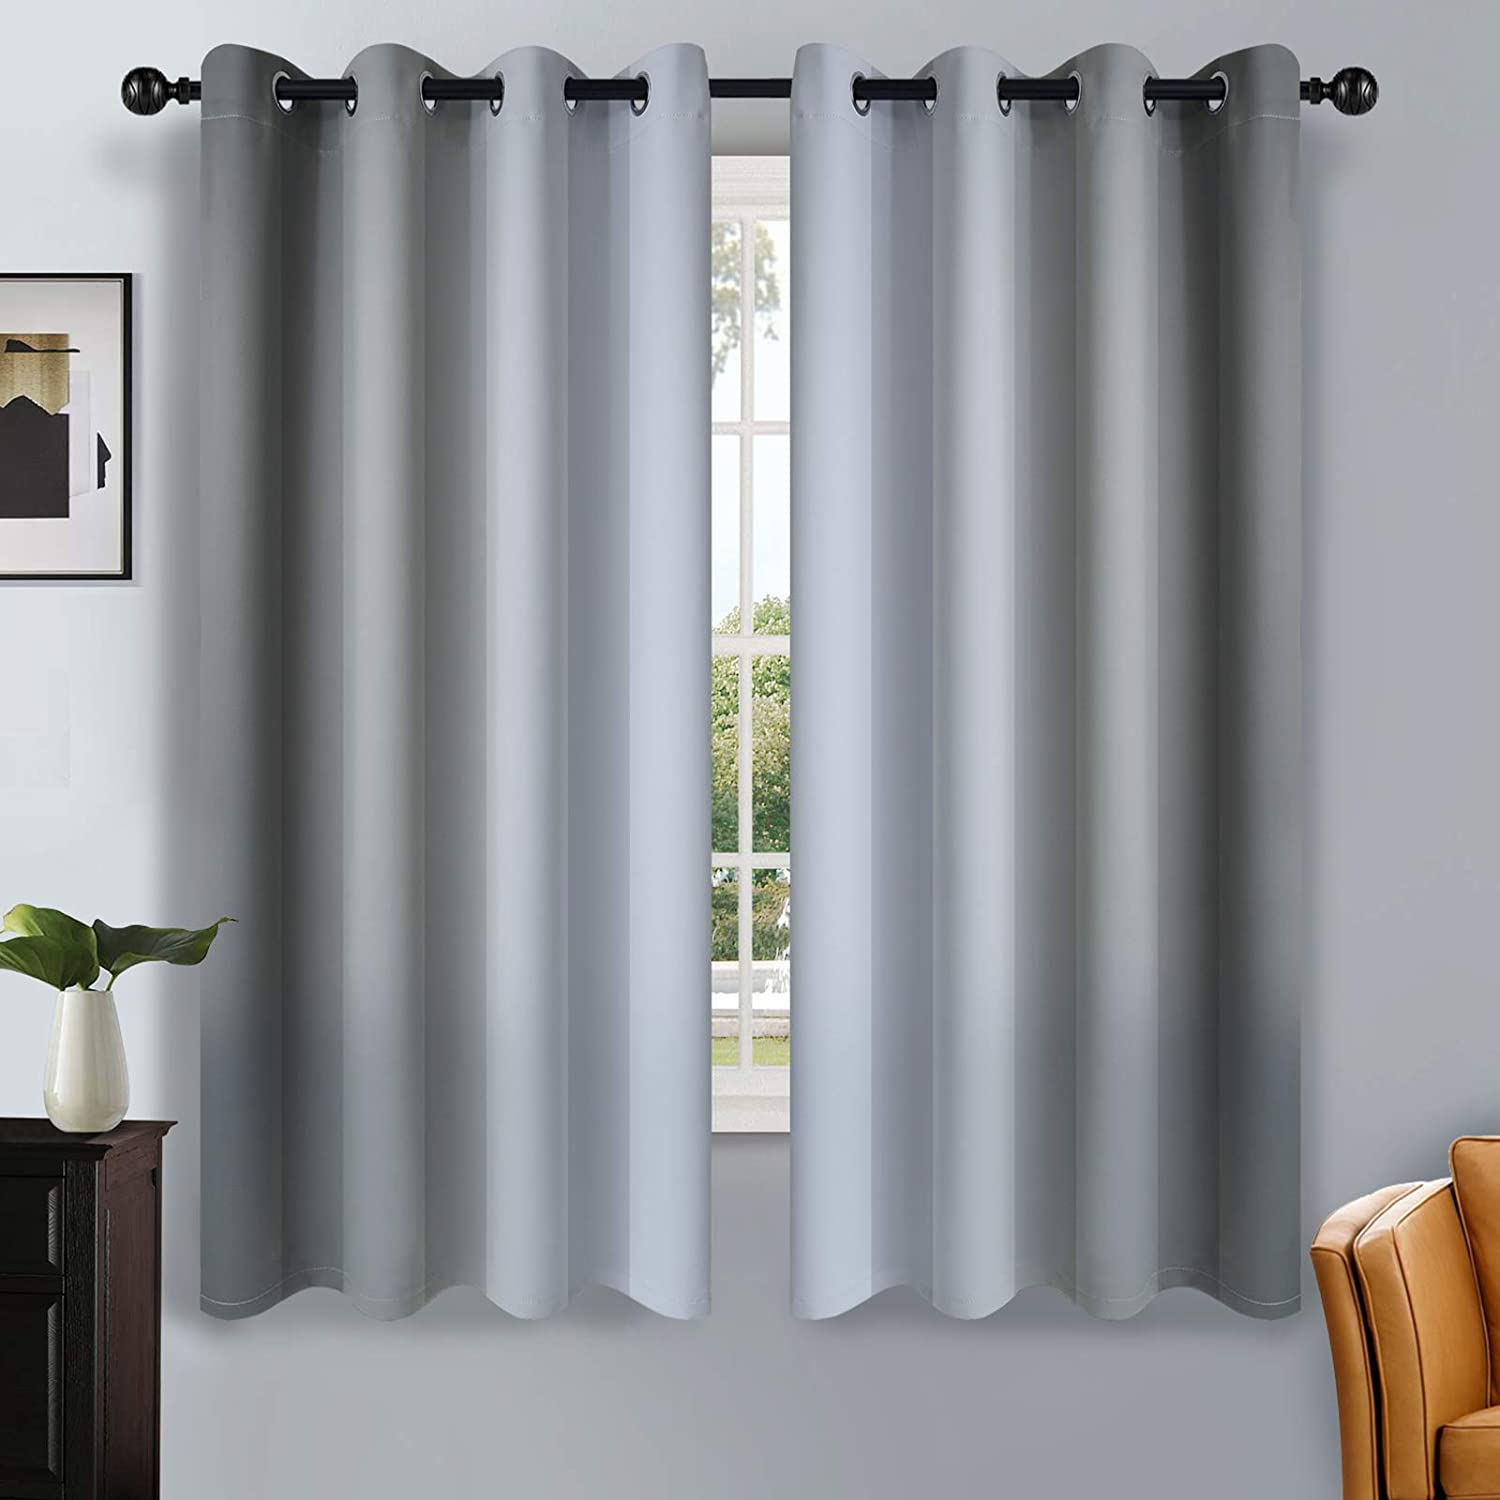 SimpleHome Ombre Room Very popular Darkening Living Light Curtains for Translated